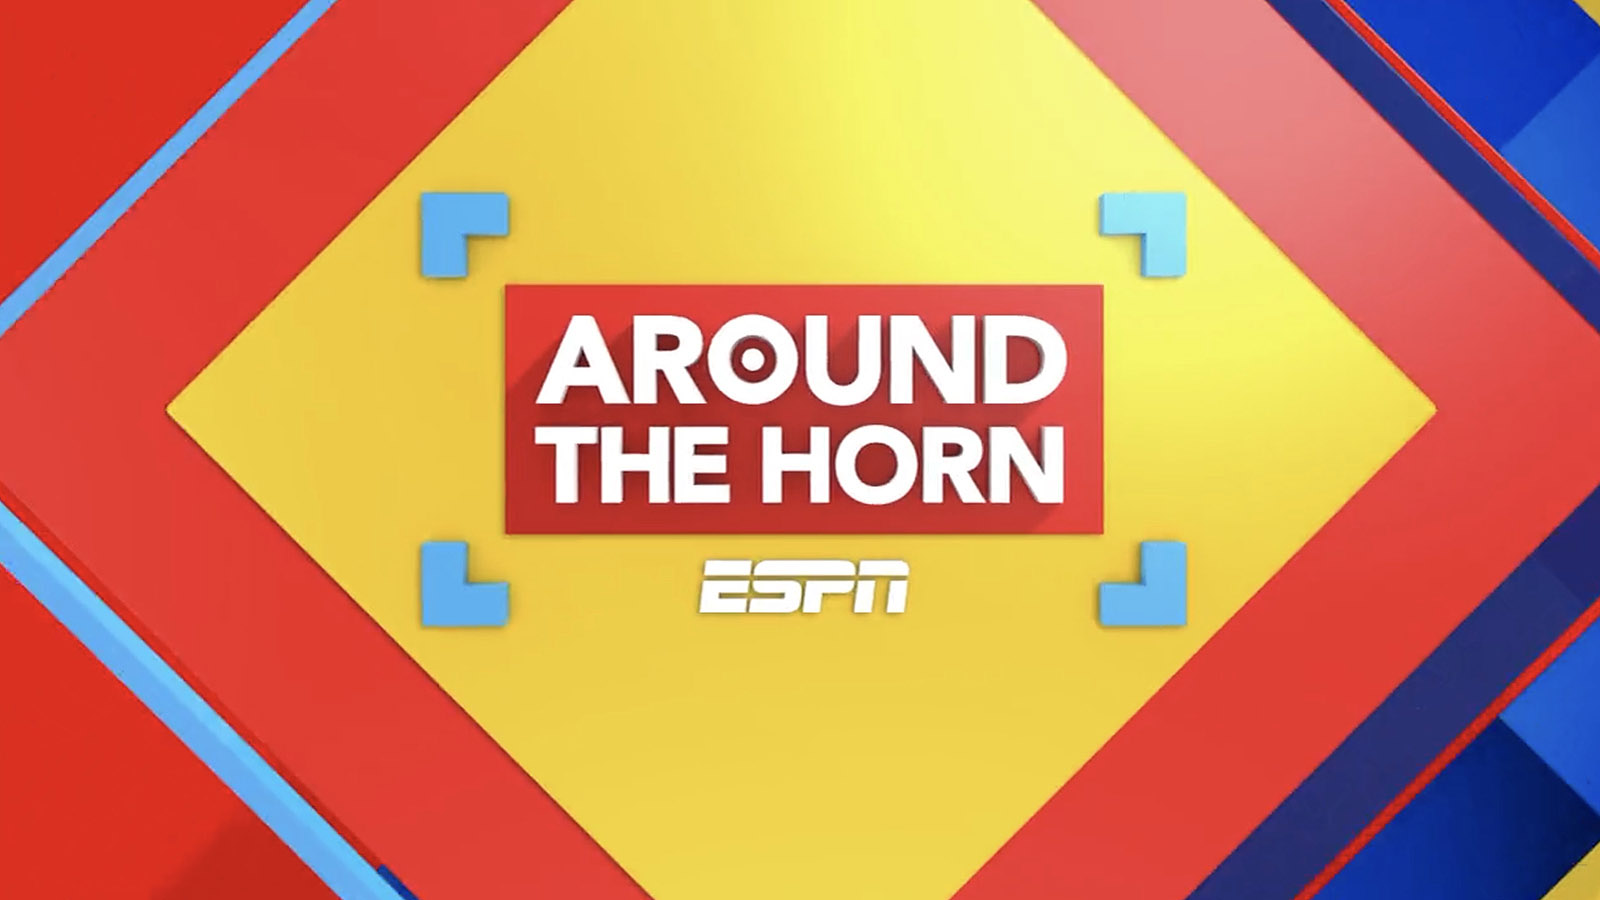 NCS_ESPN-Around-the-Horn-Graphics-Augmented-Reality_001